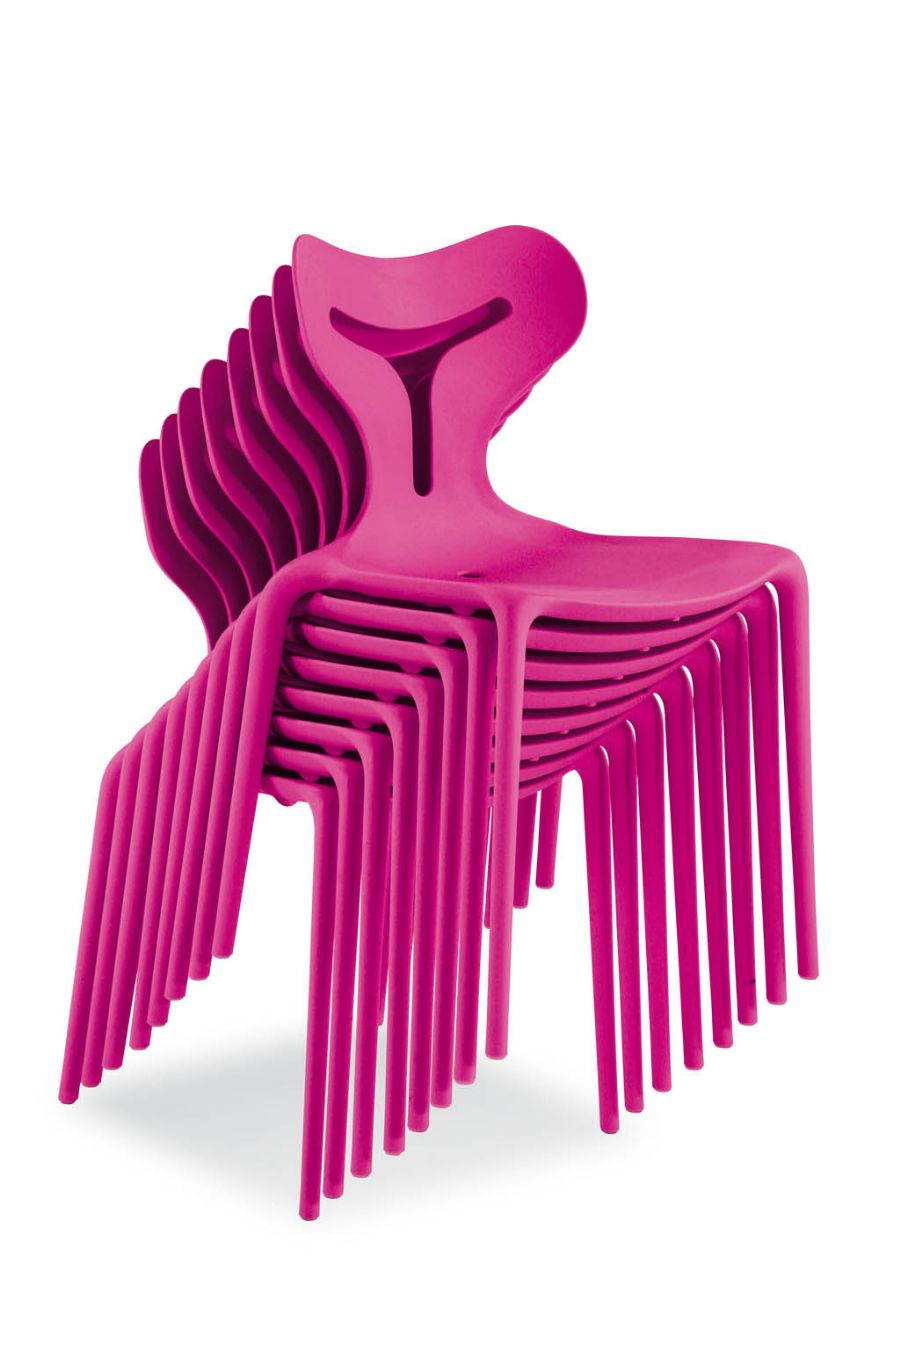 AREA 51 BY CALLIGARIS VISITOR CHAIR